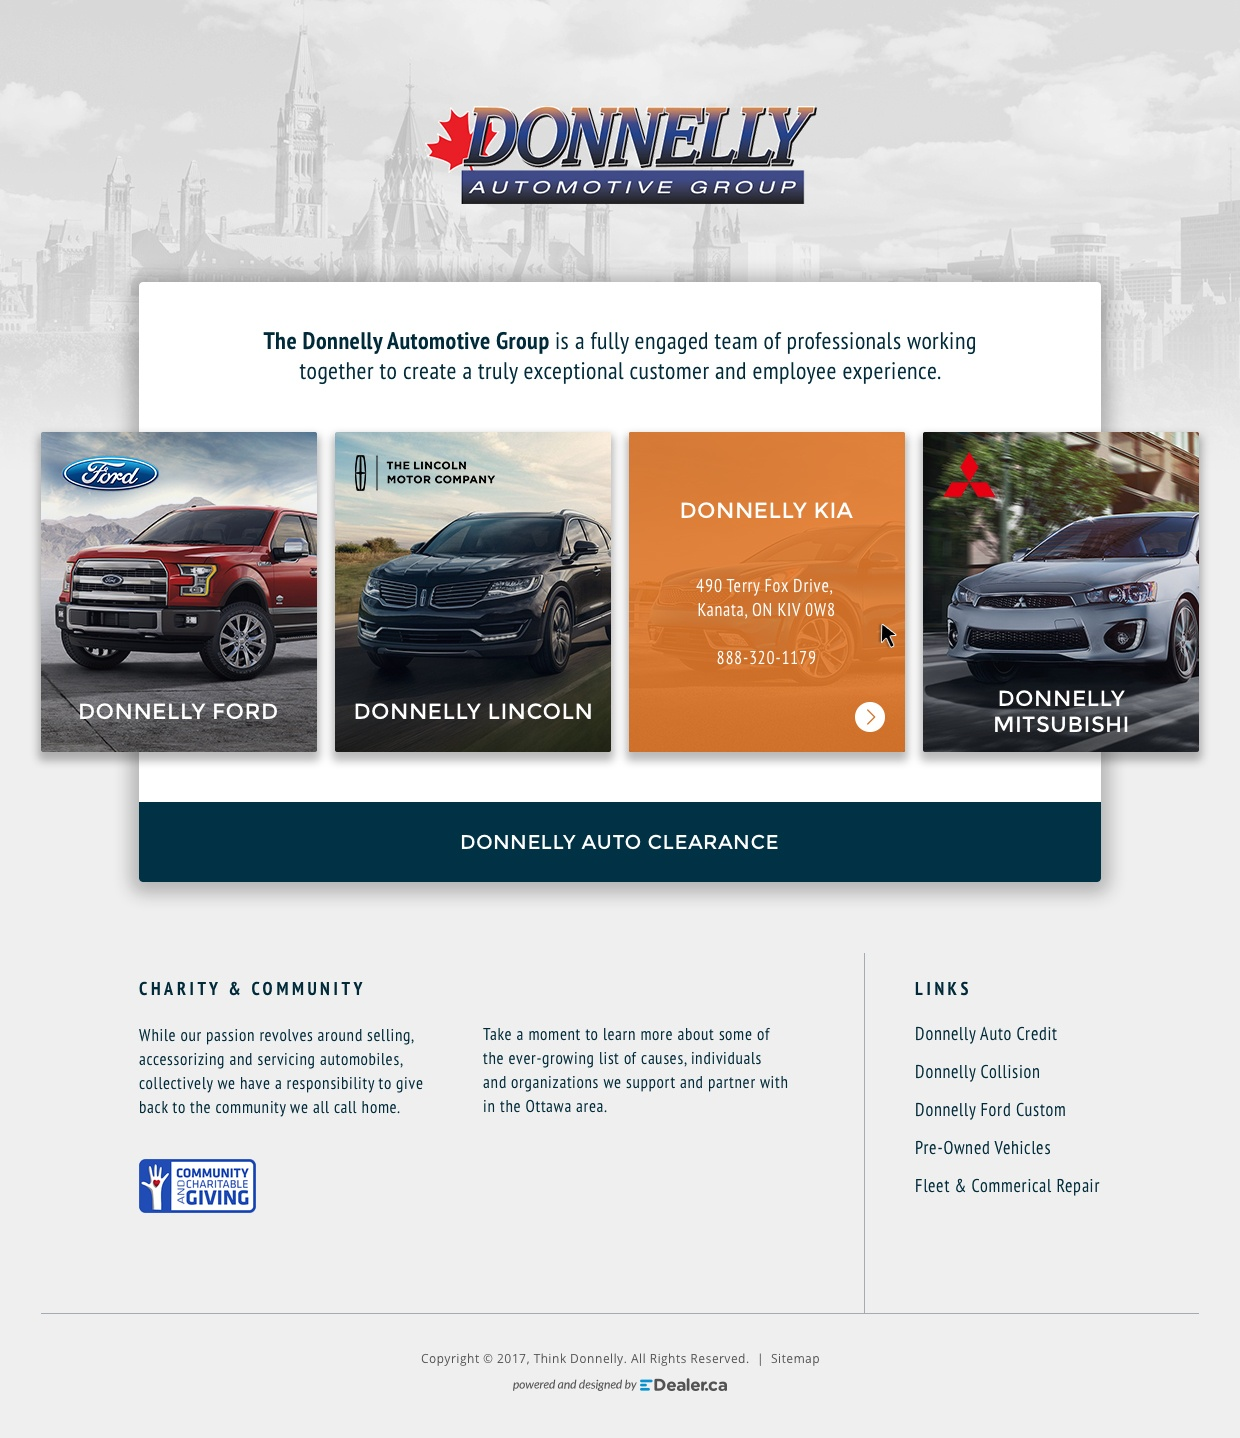 Donnelly Automotive Group